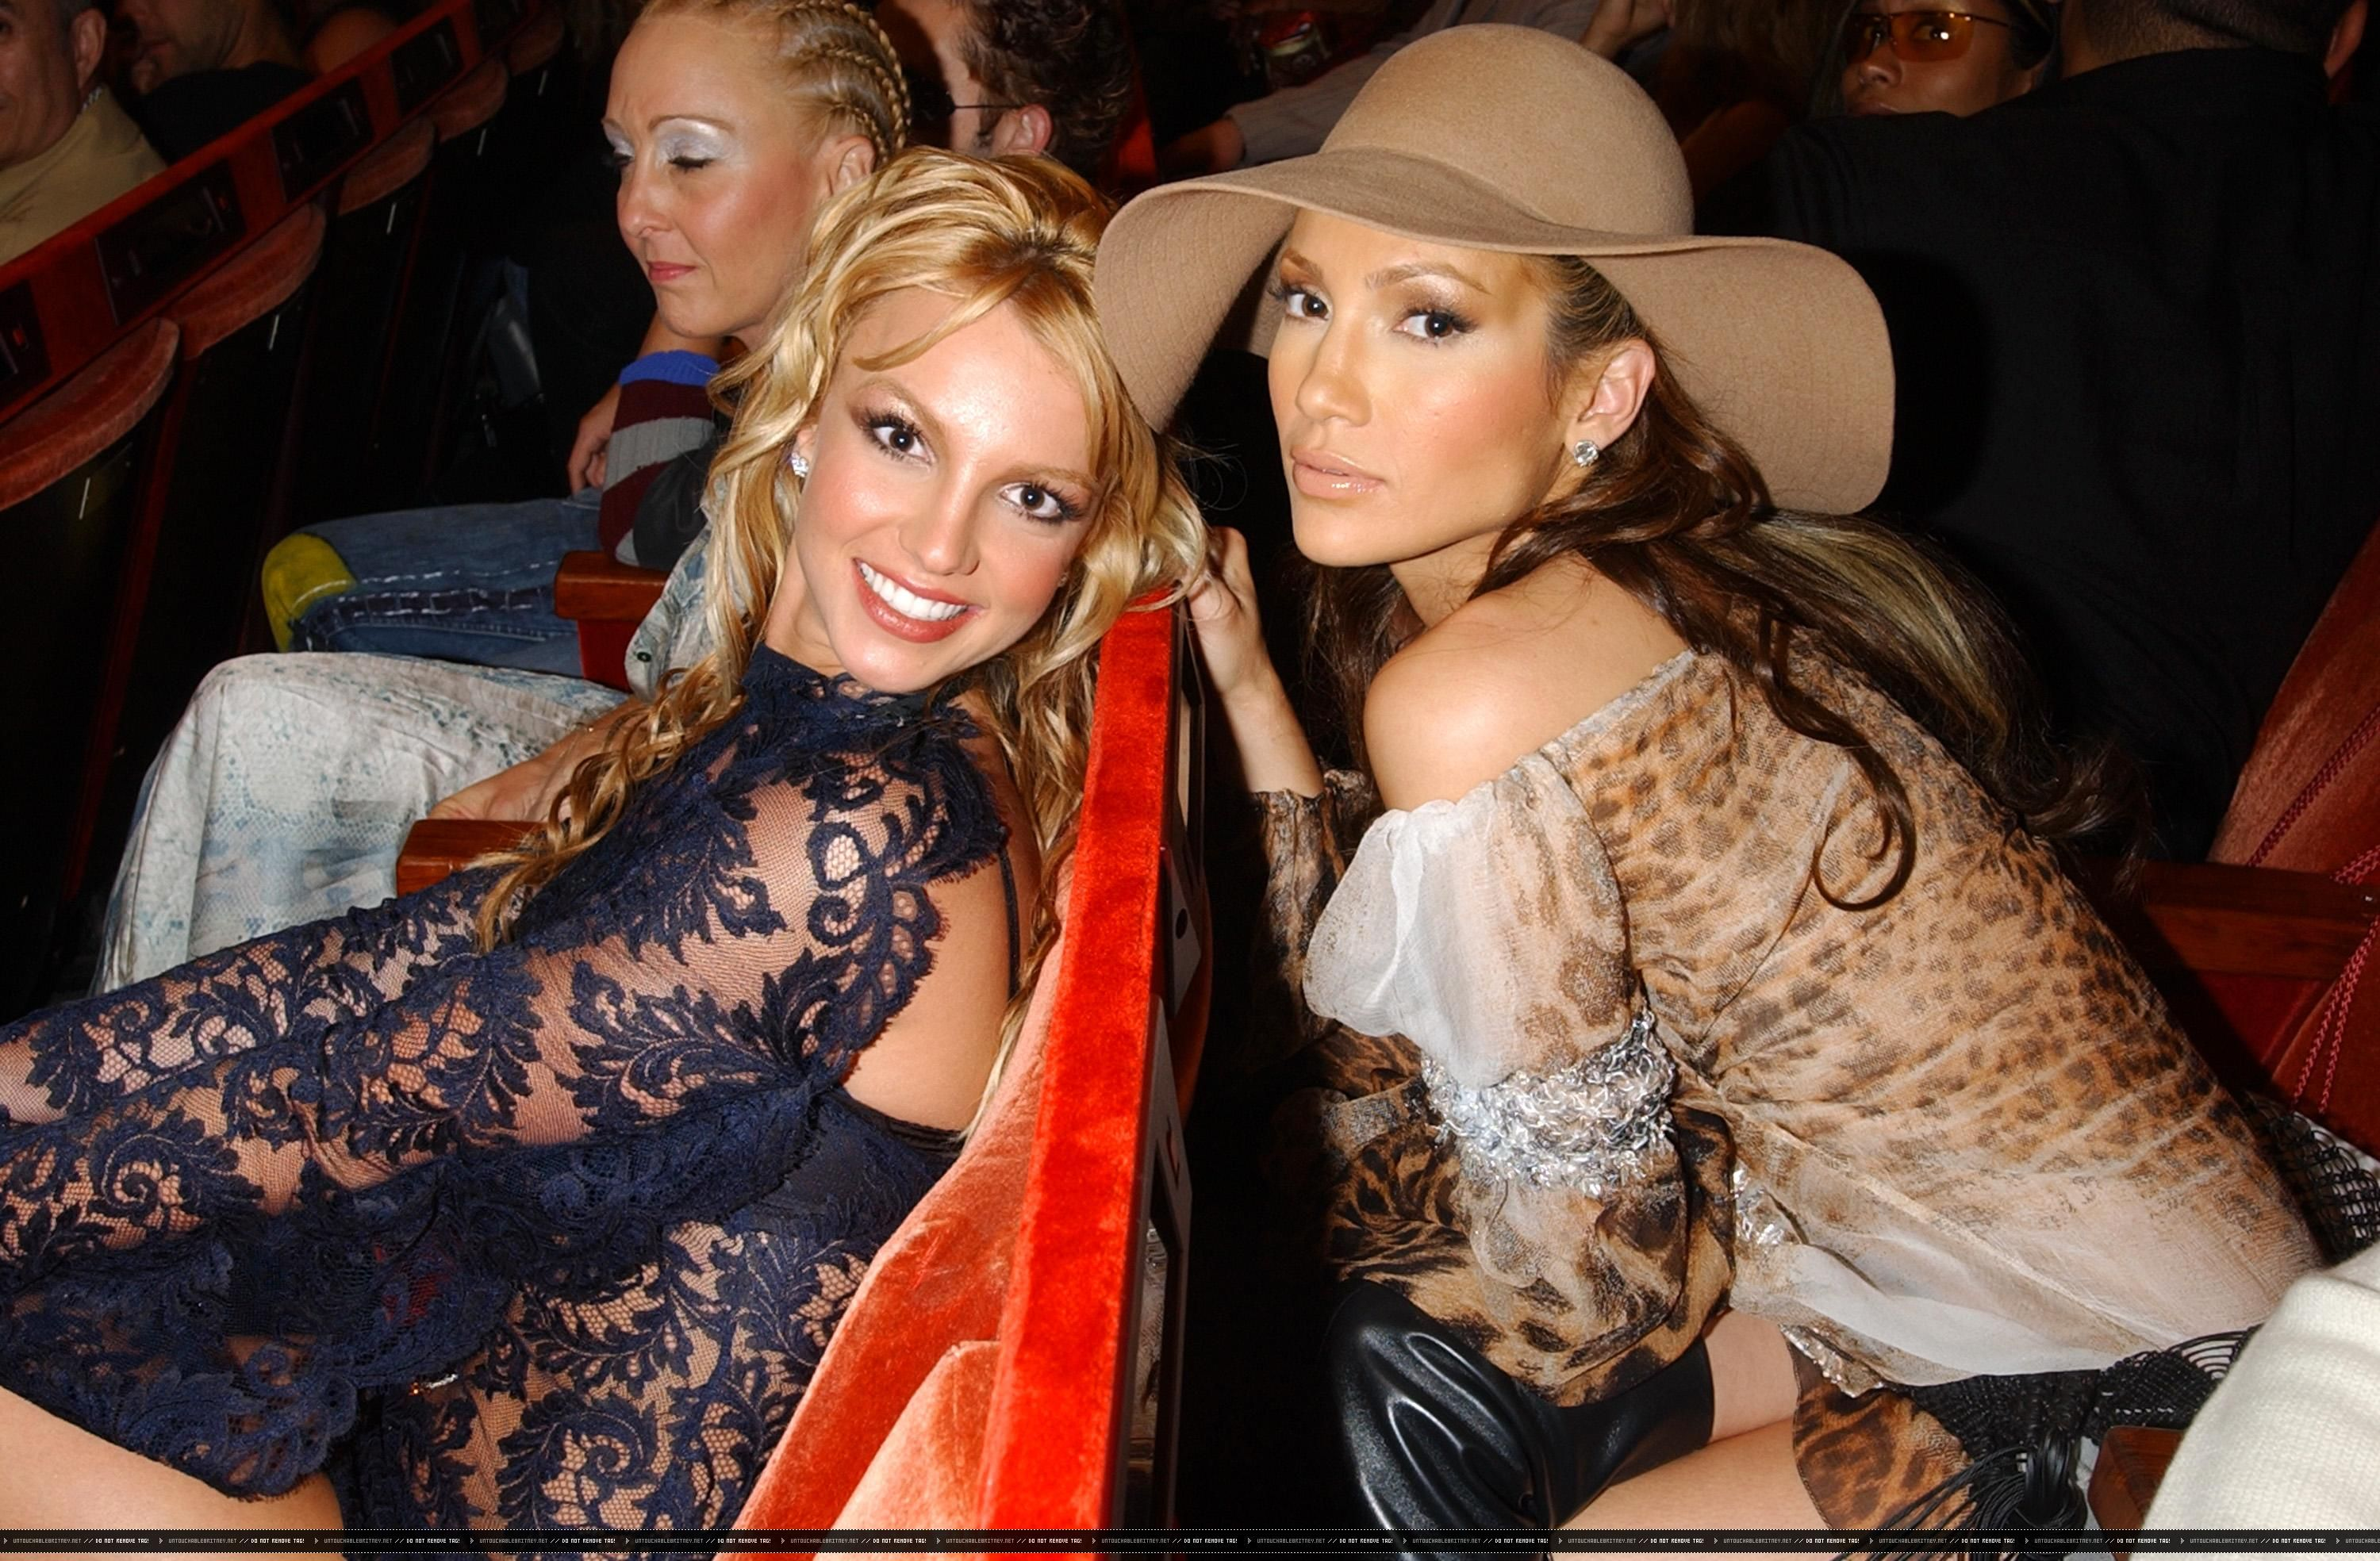 Britney Spears & J. Lo at the 2001 VMA's